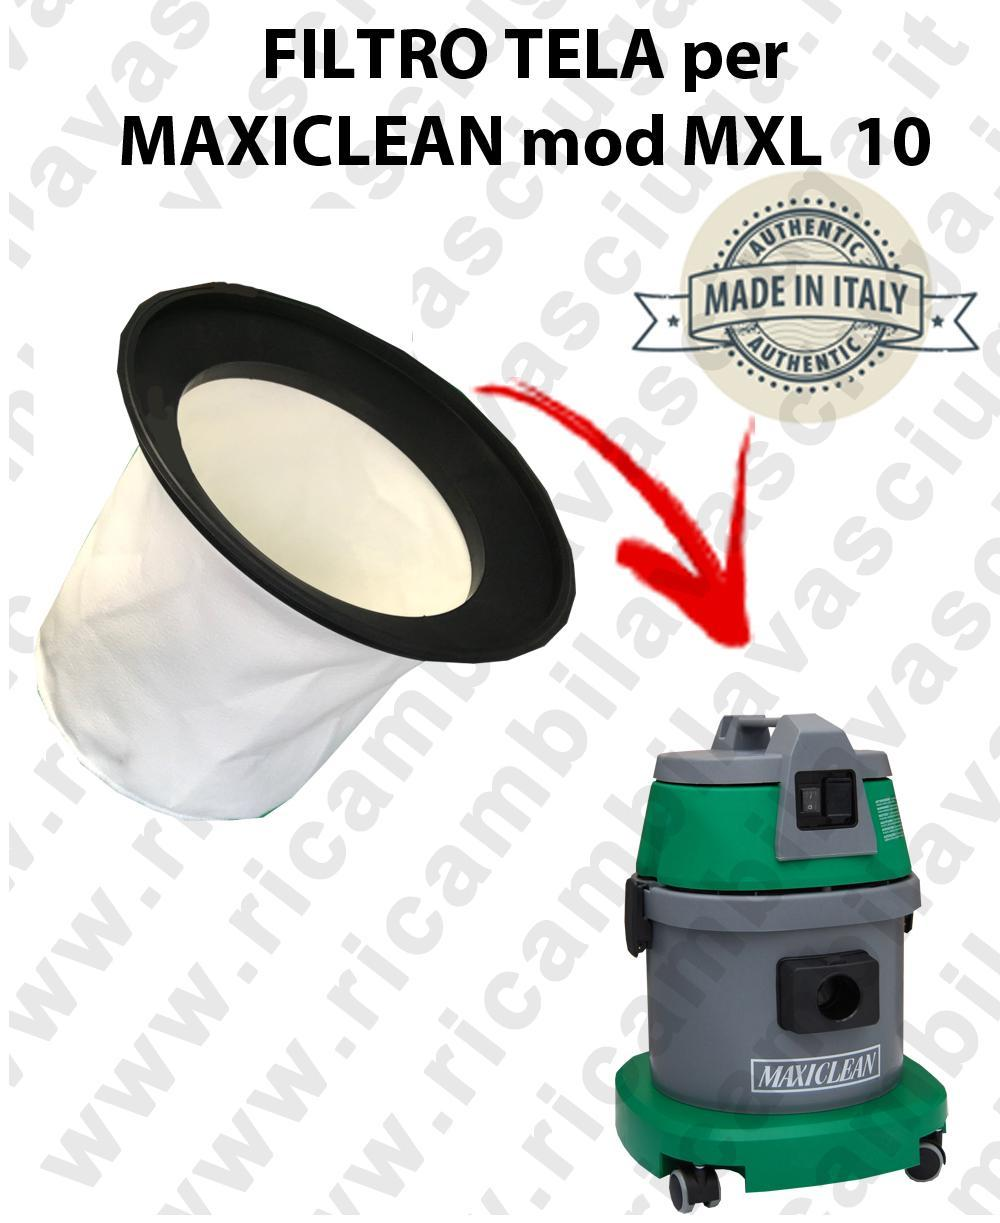 Canvas filter for vacuum cleaner MAXICLEAN model MXL10 - BY SYNCLEAN